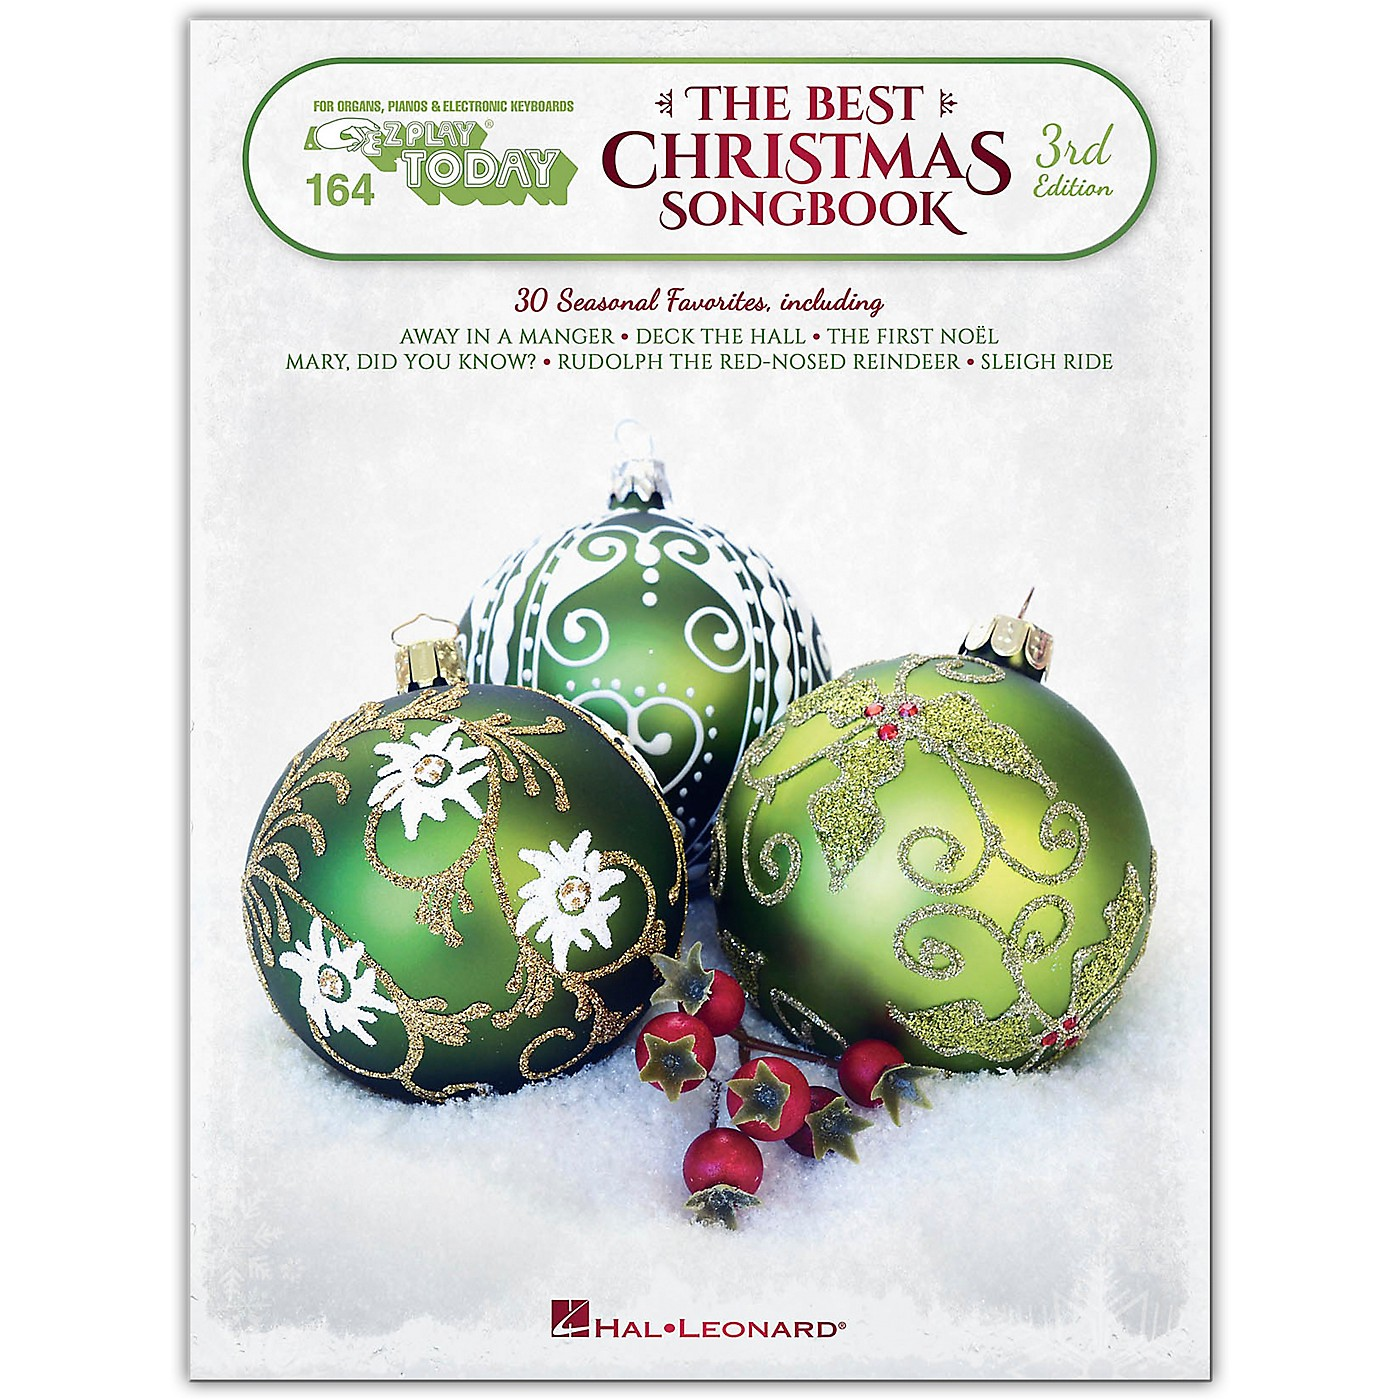 Hal Leonard The Best Christmas Songbook - 3rd Edition E-Z Play Today Volume 164 thumbnail